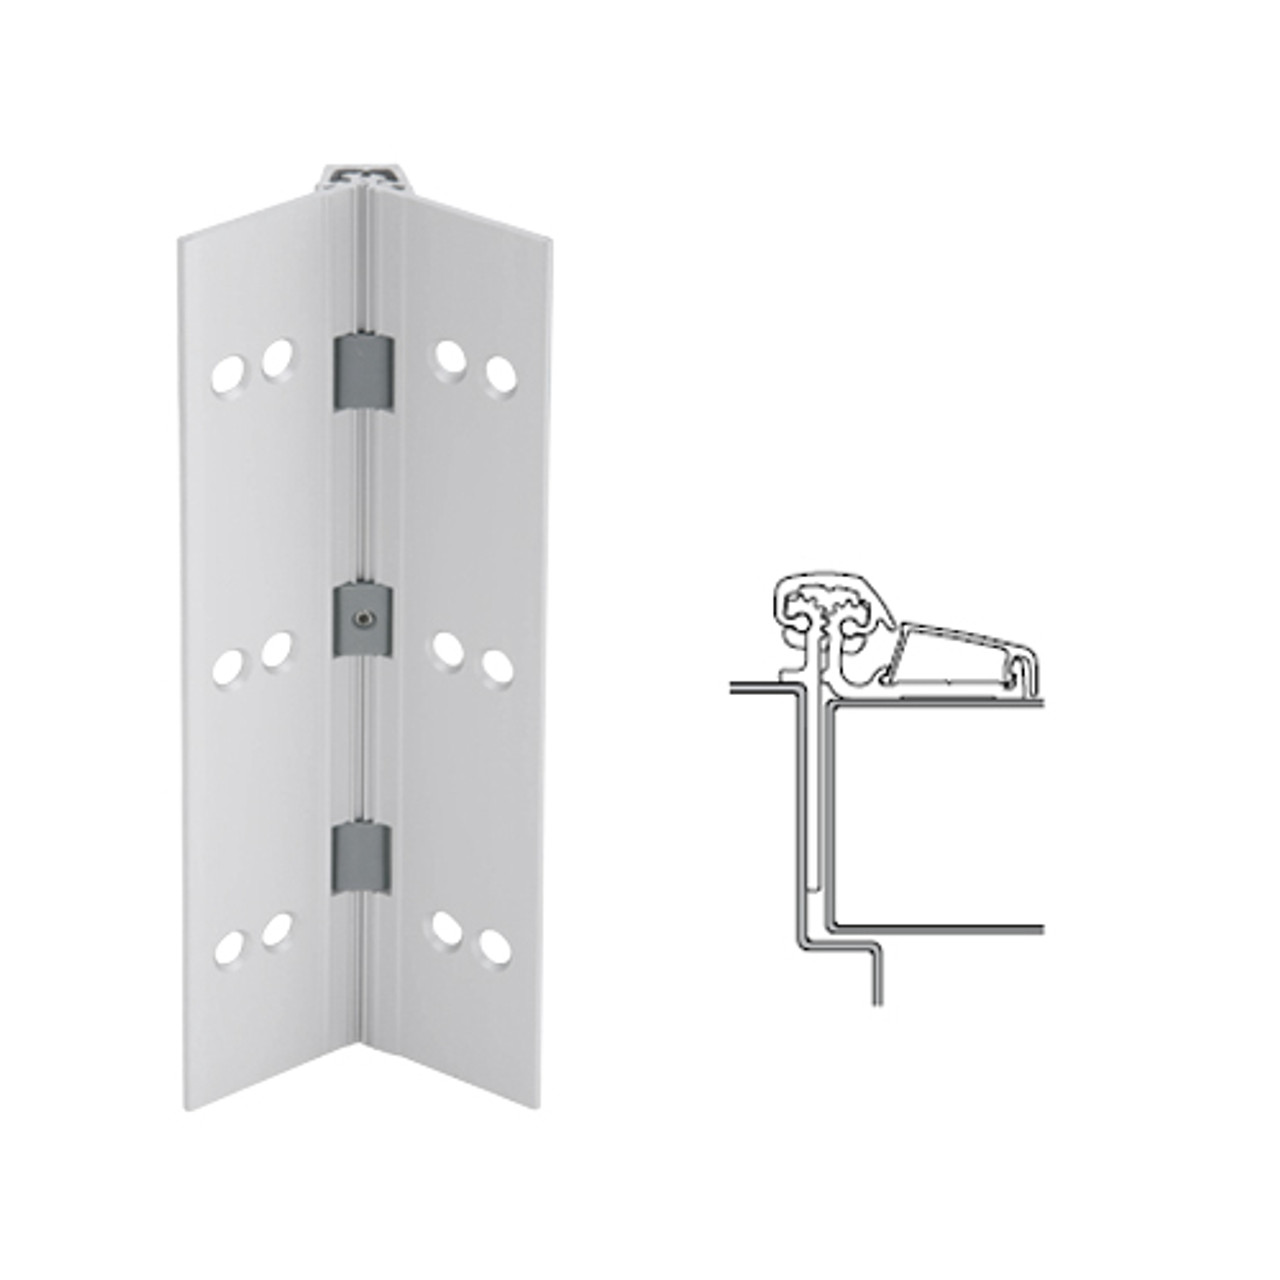 053XY-US28-95-SECHM IVES Adjustable Half Surface Continuous Geared Hinges with Security Screws - Hex Pin Drive in Satin Aluminum